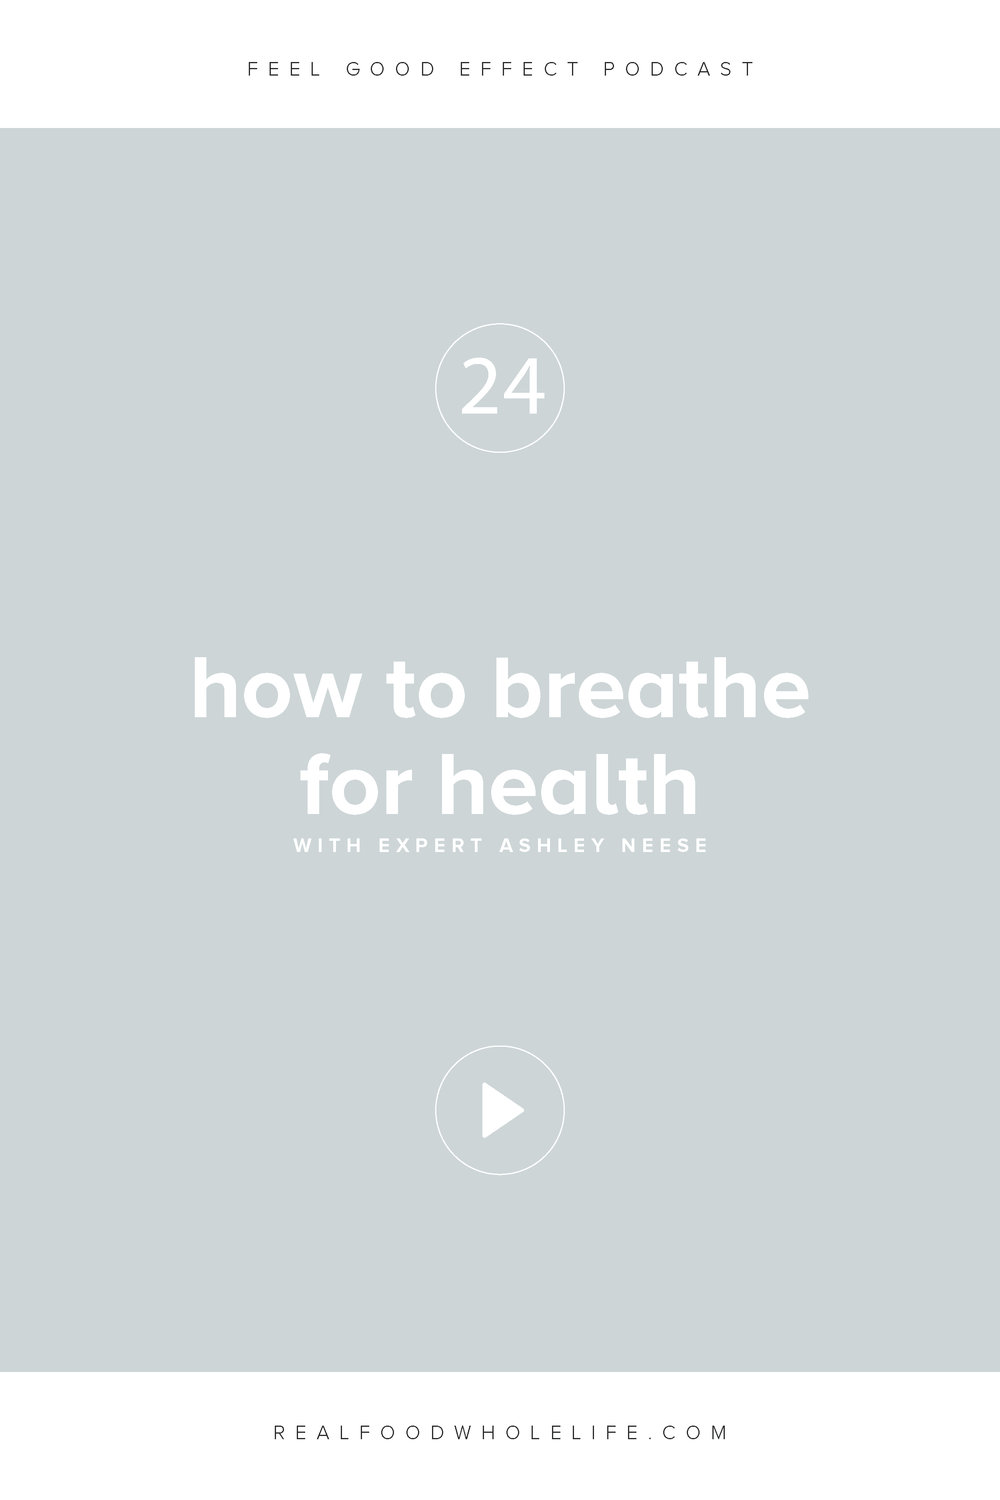 How to Breathe for Health with Ashley Neese